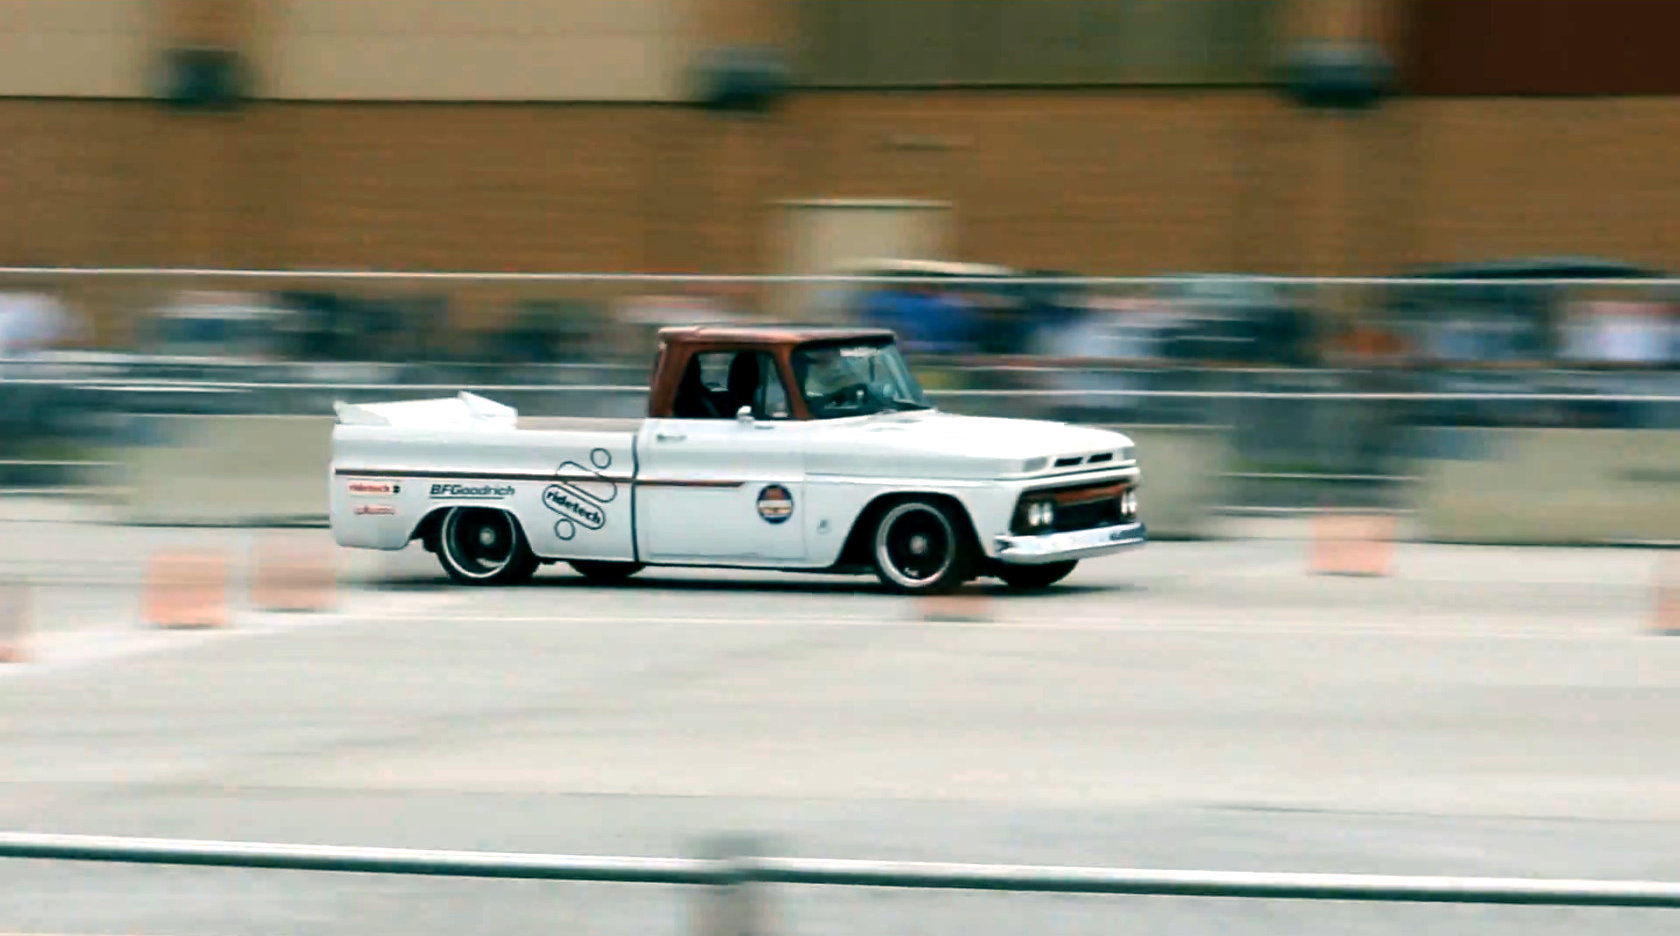 Watch The Goodguys Autocross Pro Drivers Go All Out In Florida - The good guys automotive